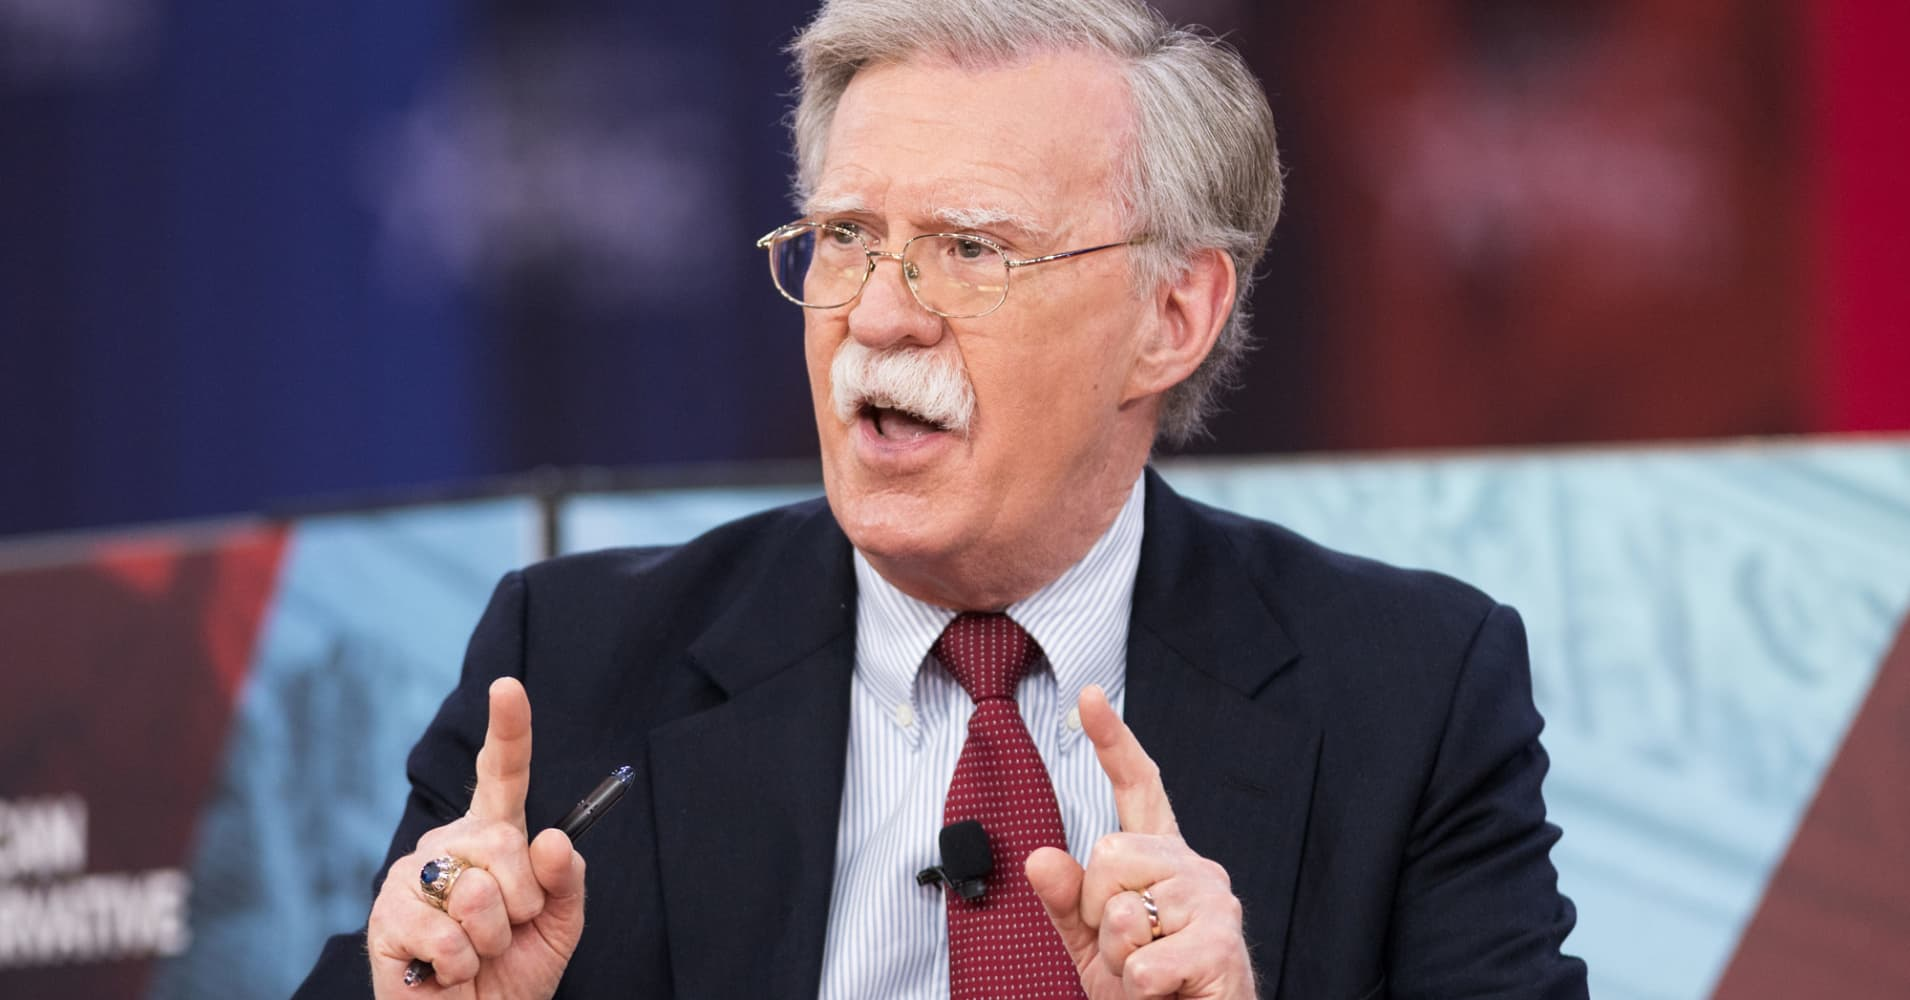 John Bolton, the ultrahawk rumored to be Trump's next national security adviser, explained